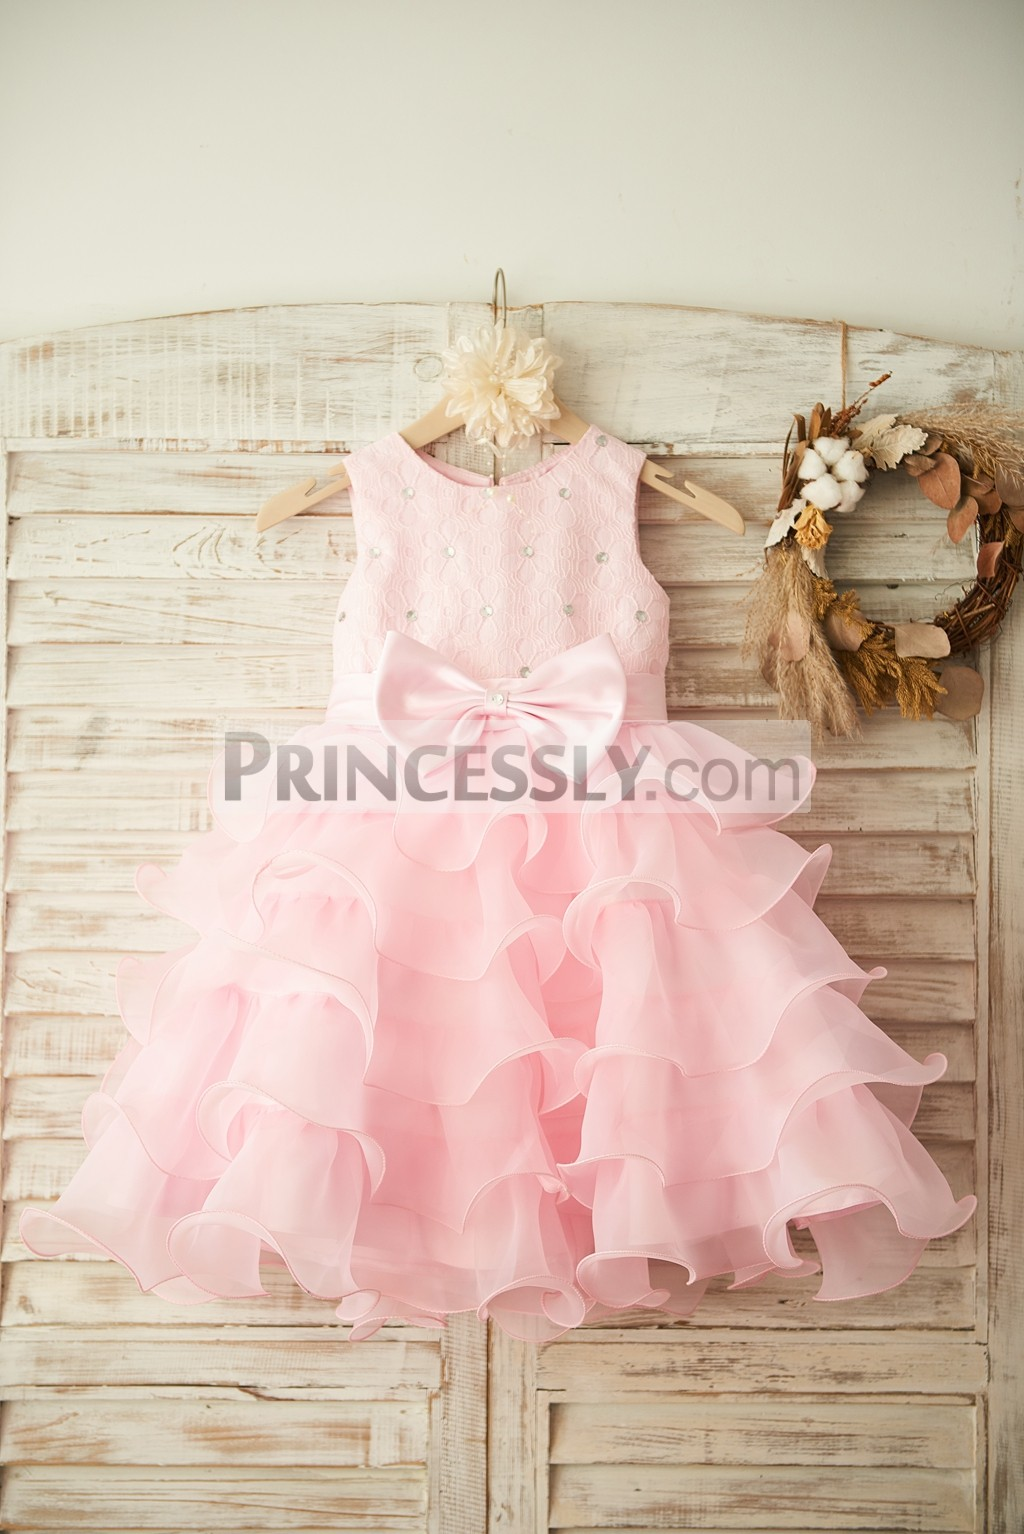 Crystals Pink Lace Tiered Ruffles Organza Flower Girl Dress with Bow